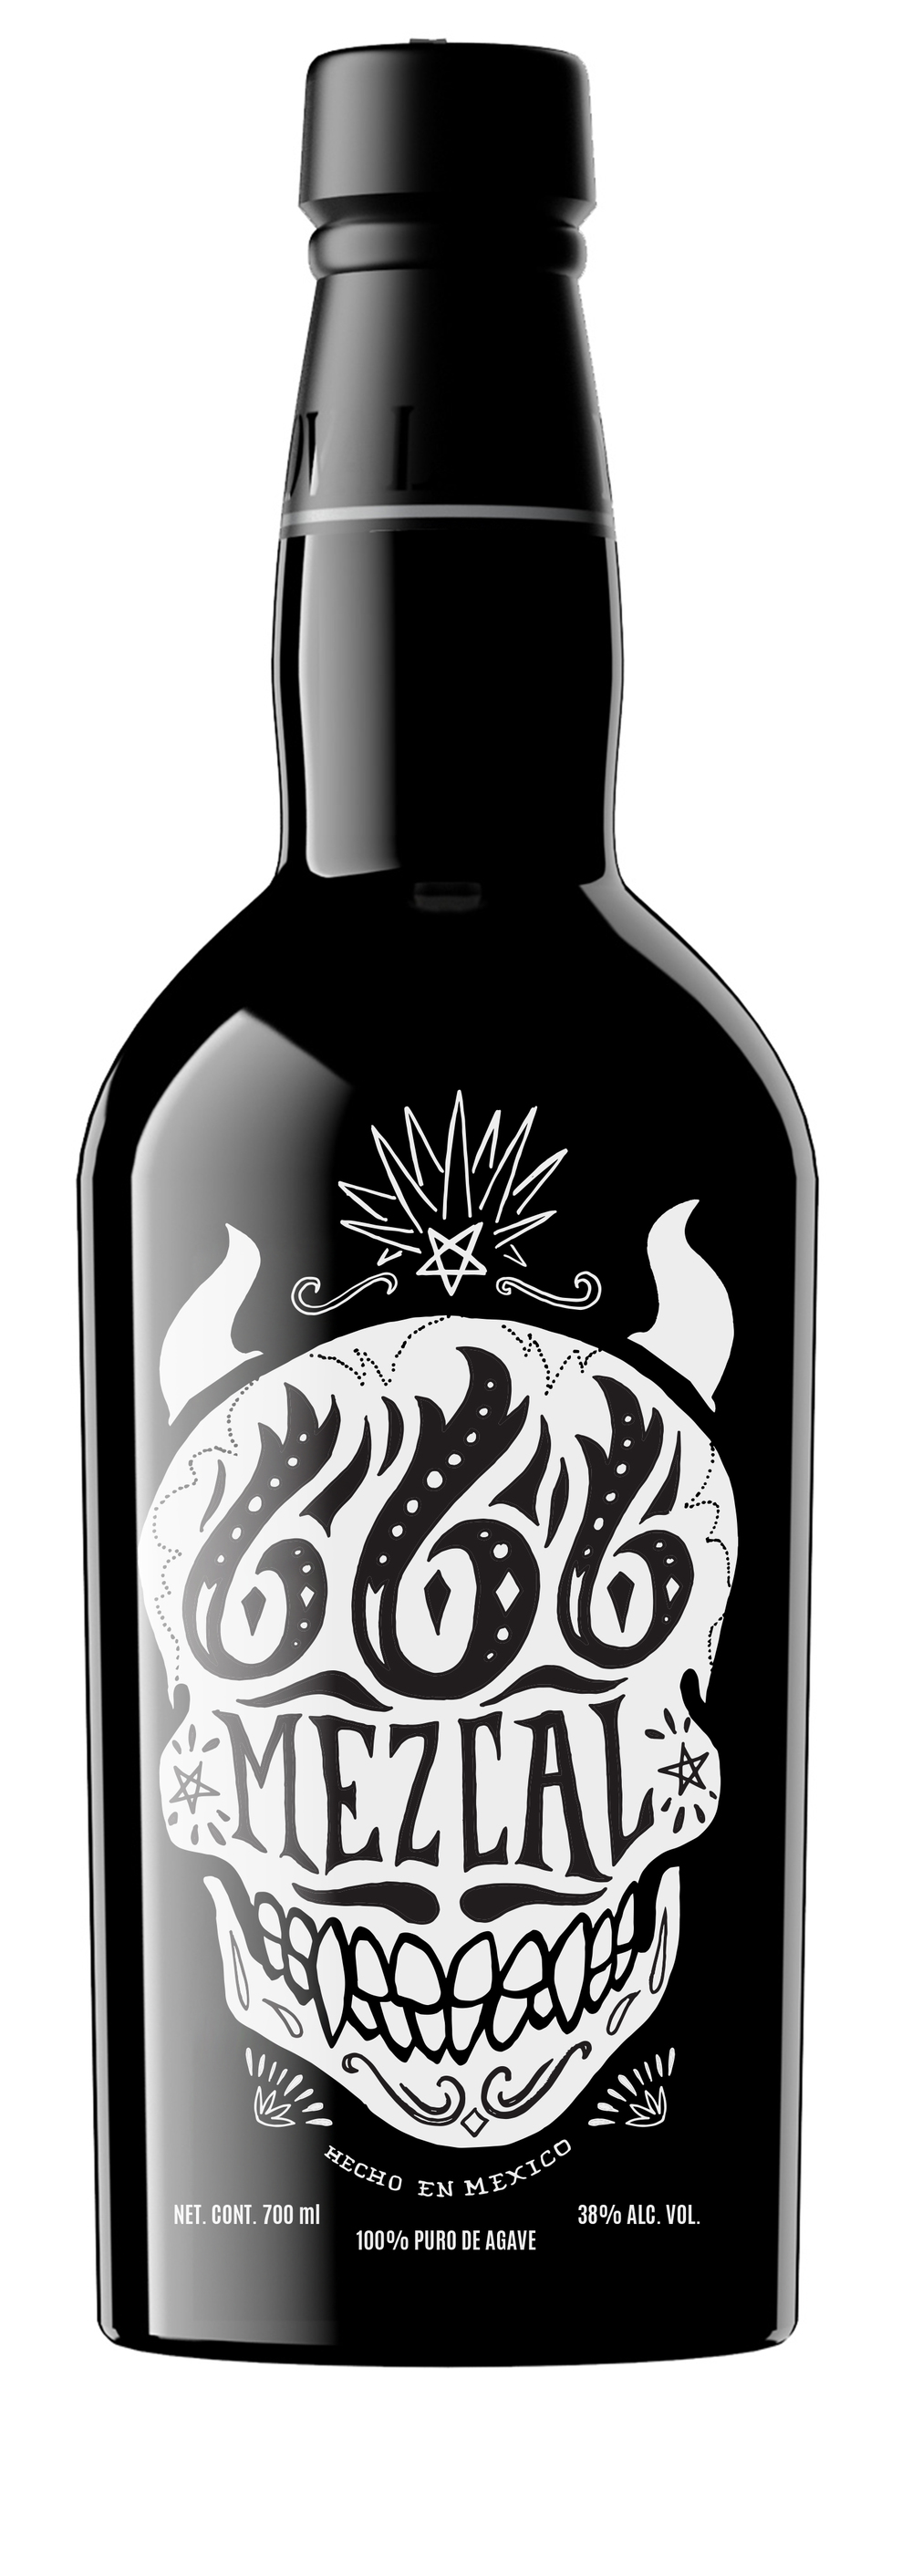 Mezcal 666 Black Bottles2 opt2_0003_all white skull.jpg